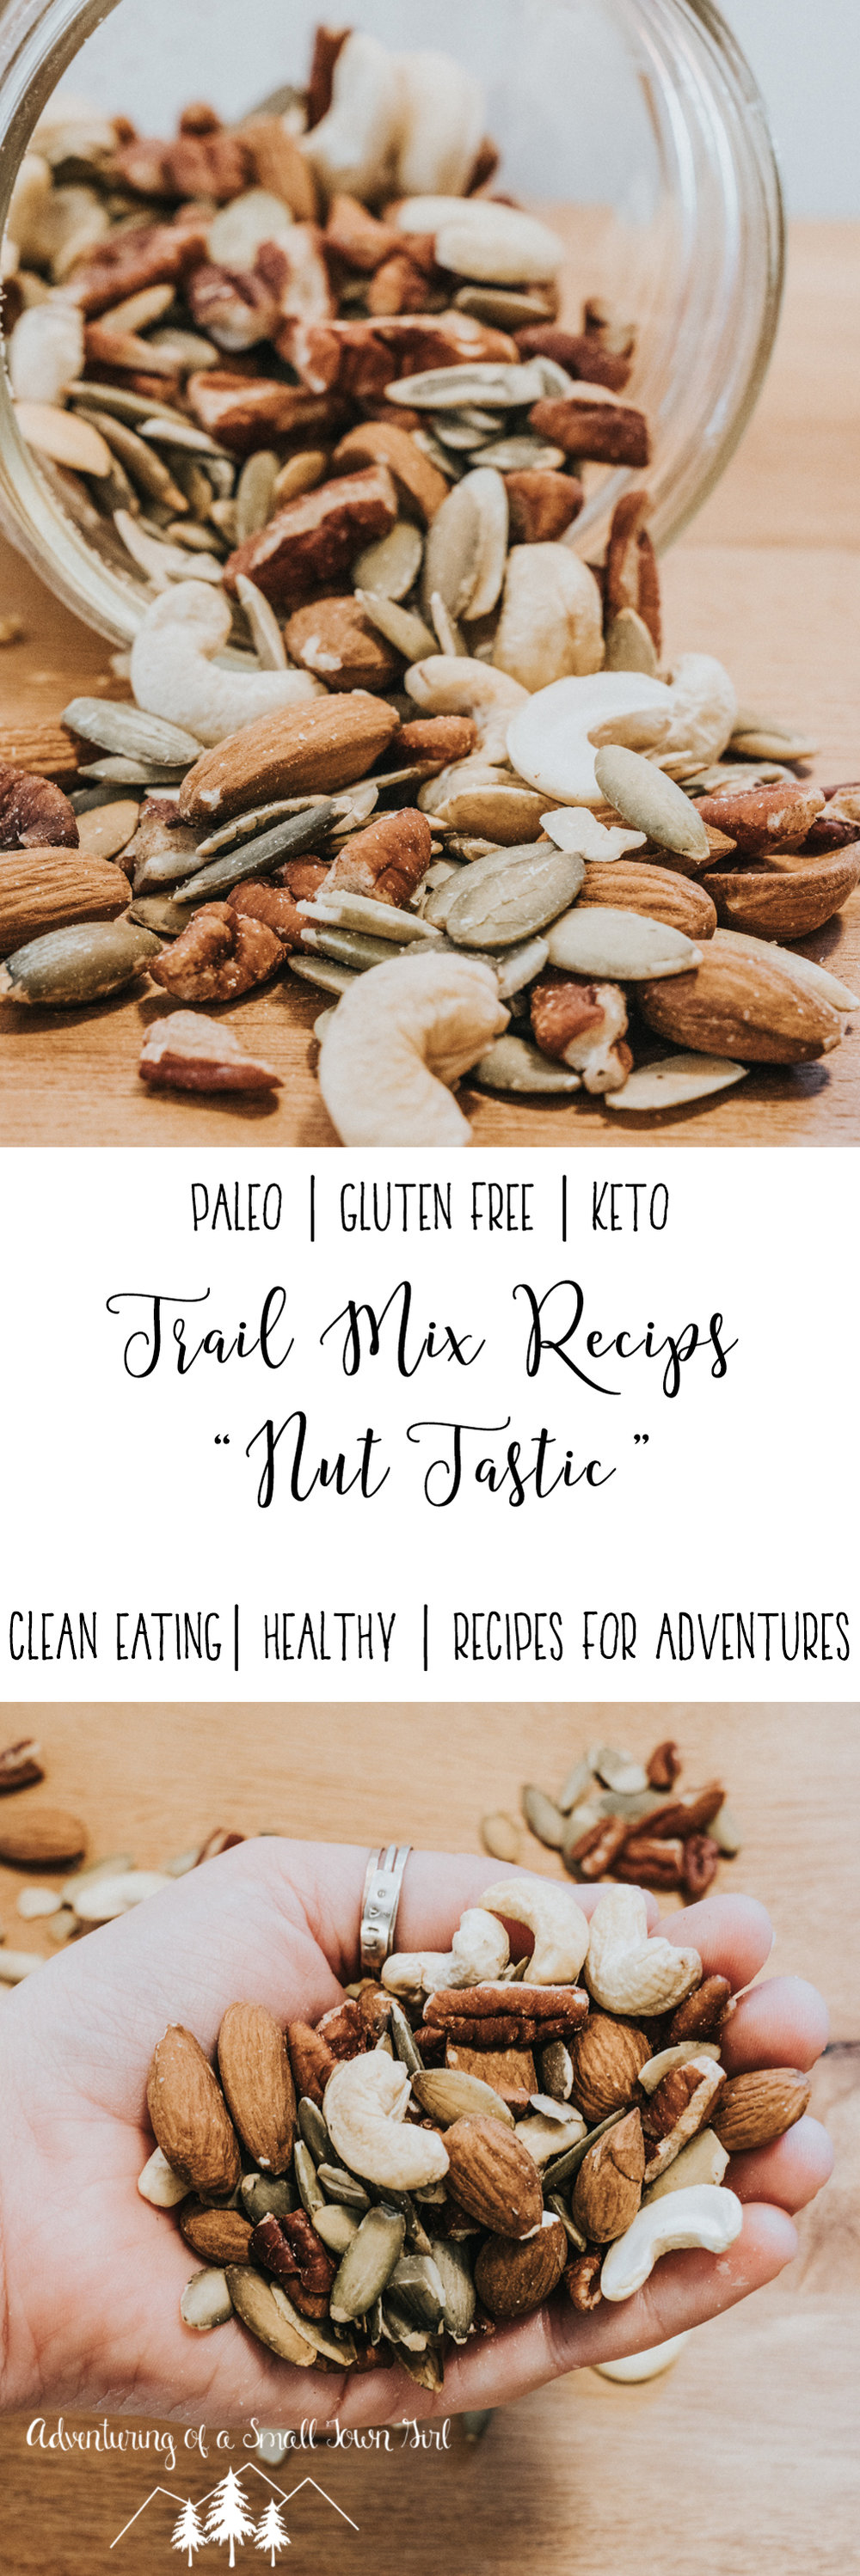 Homemade Trail Mix Recipe by Adventuring of a Small Town Girl (ASTG) - No Bake Raw Vegan Trail Mix - Make your own trail mix.jpg